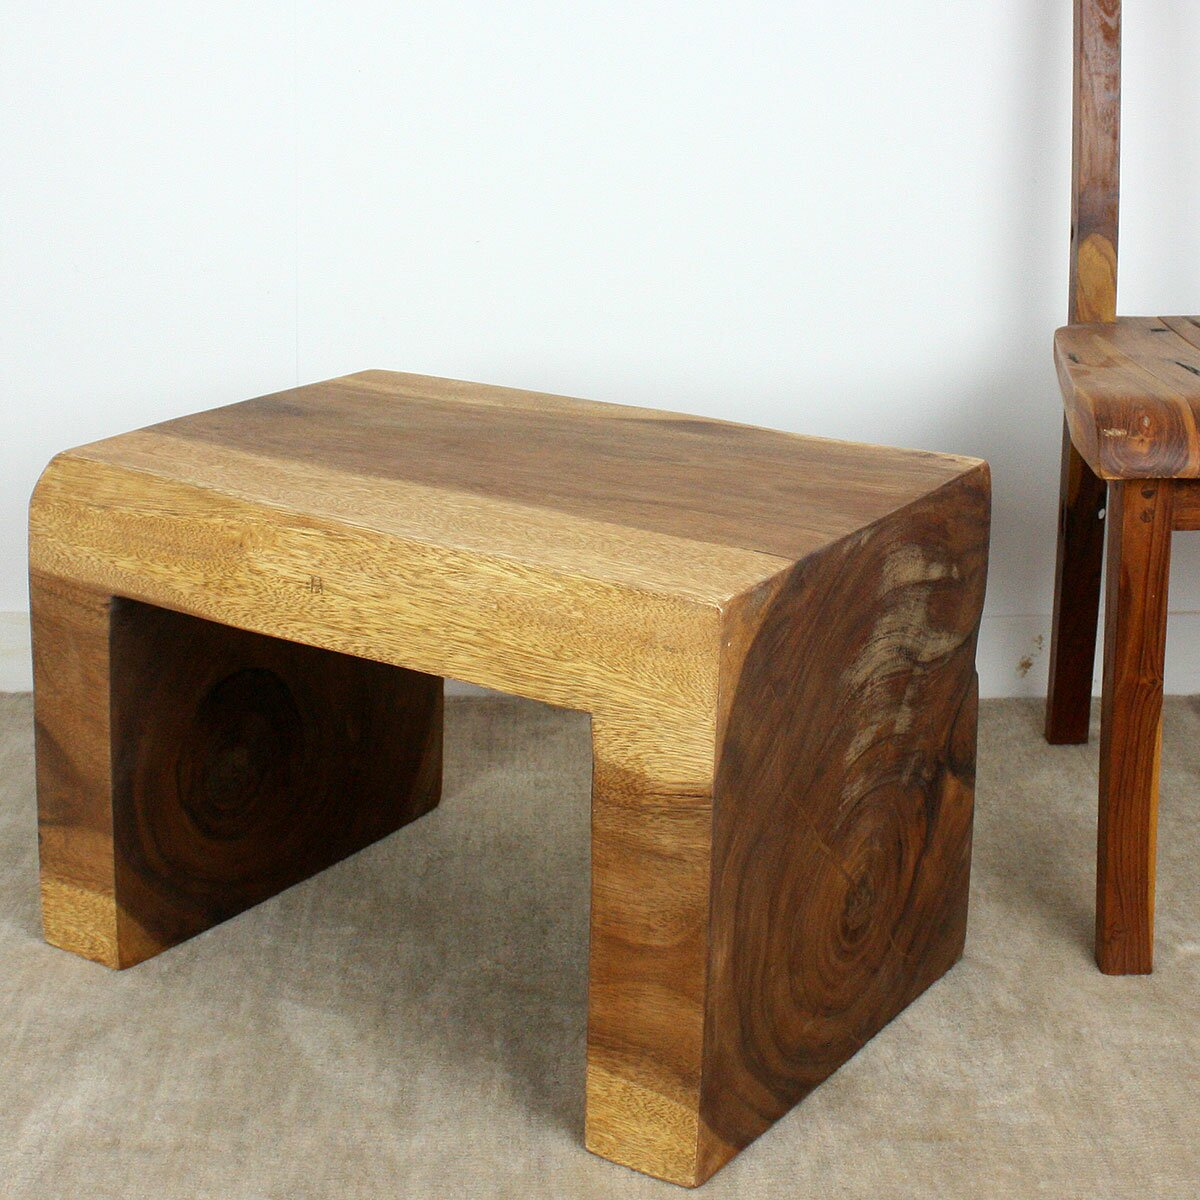 Waterfall Ends Kitchen Bench: Strata Furniture End Table & Reviews